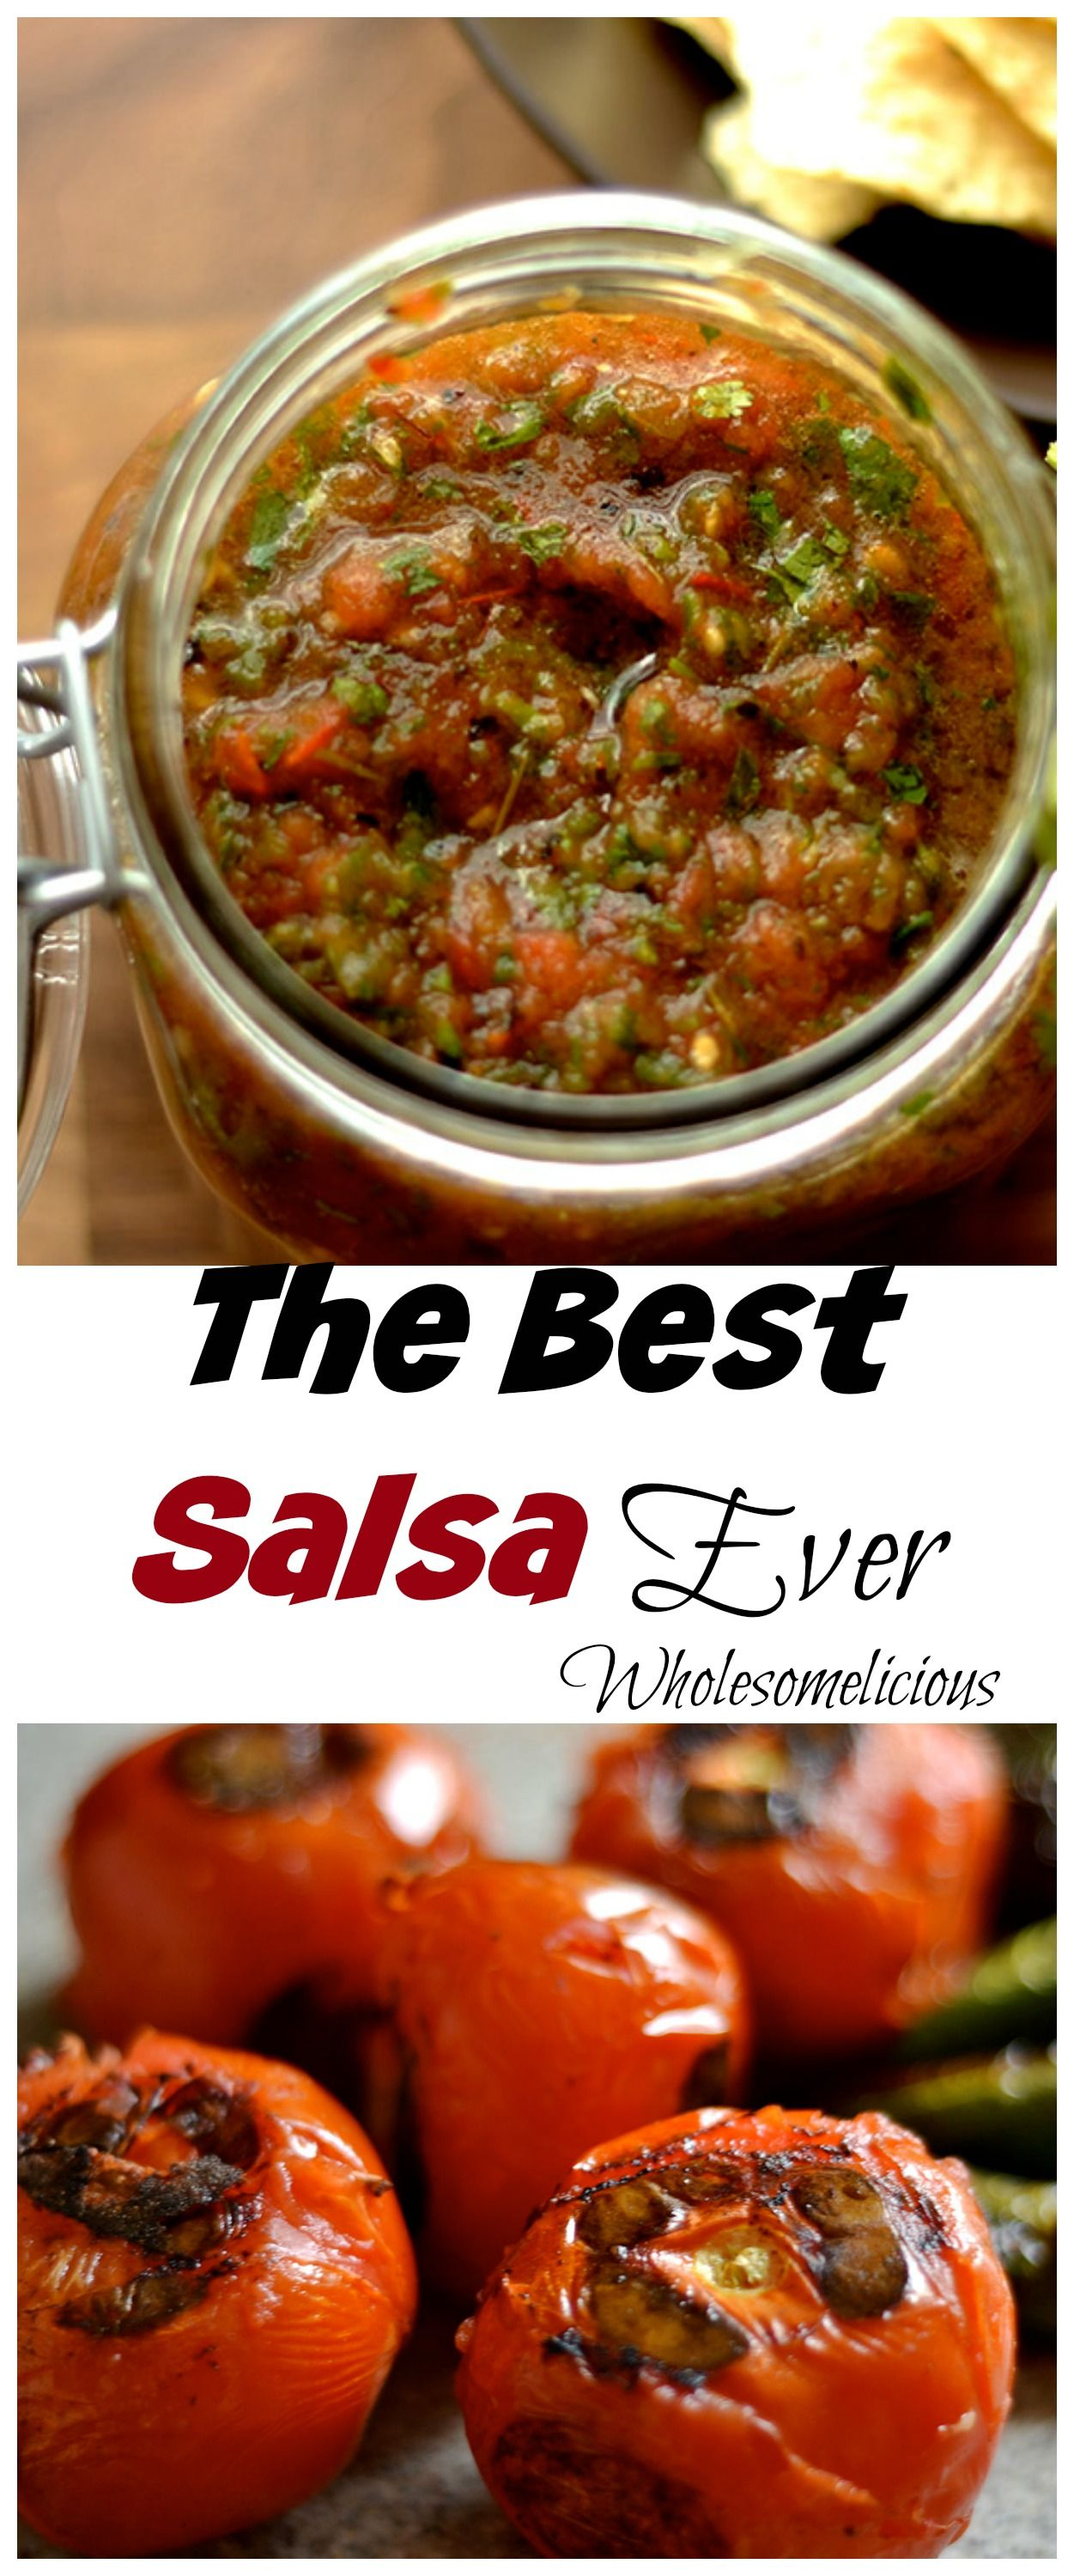 The Best Salsa Ever - Wholesomelicious